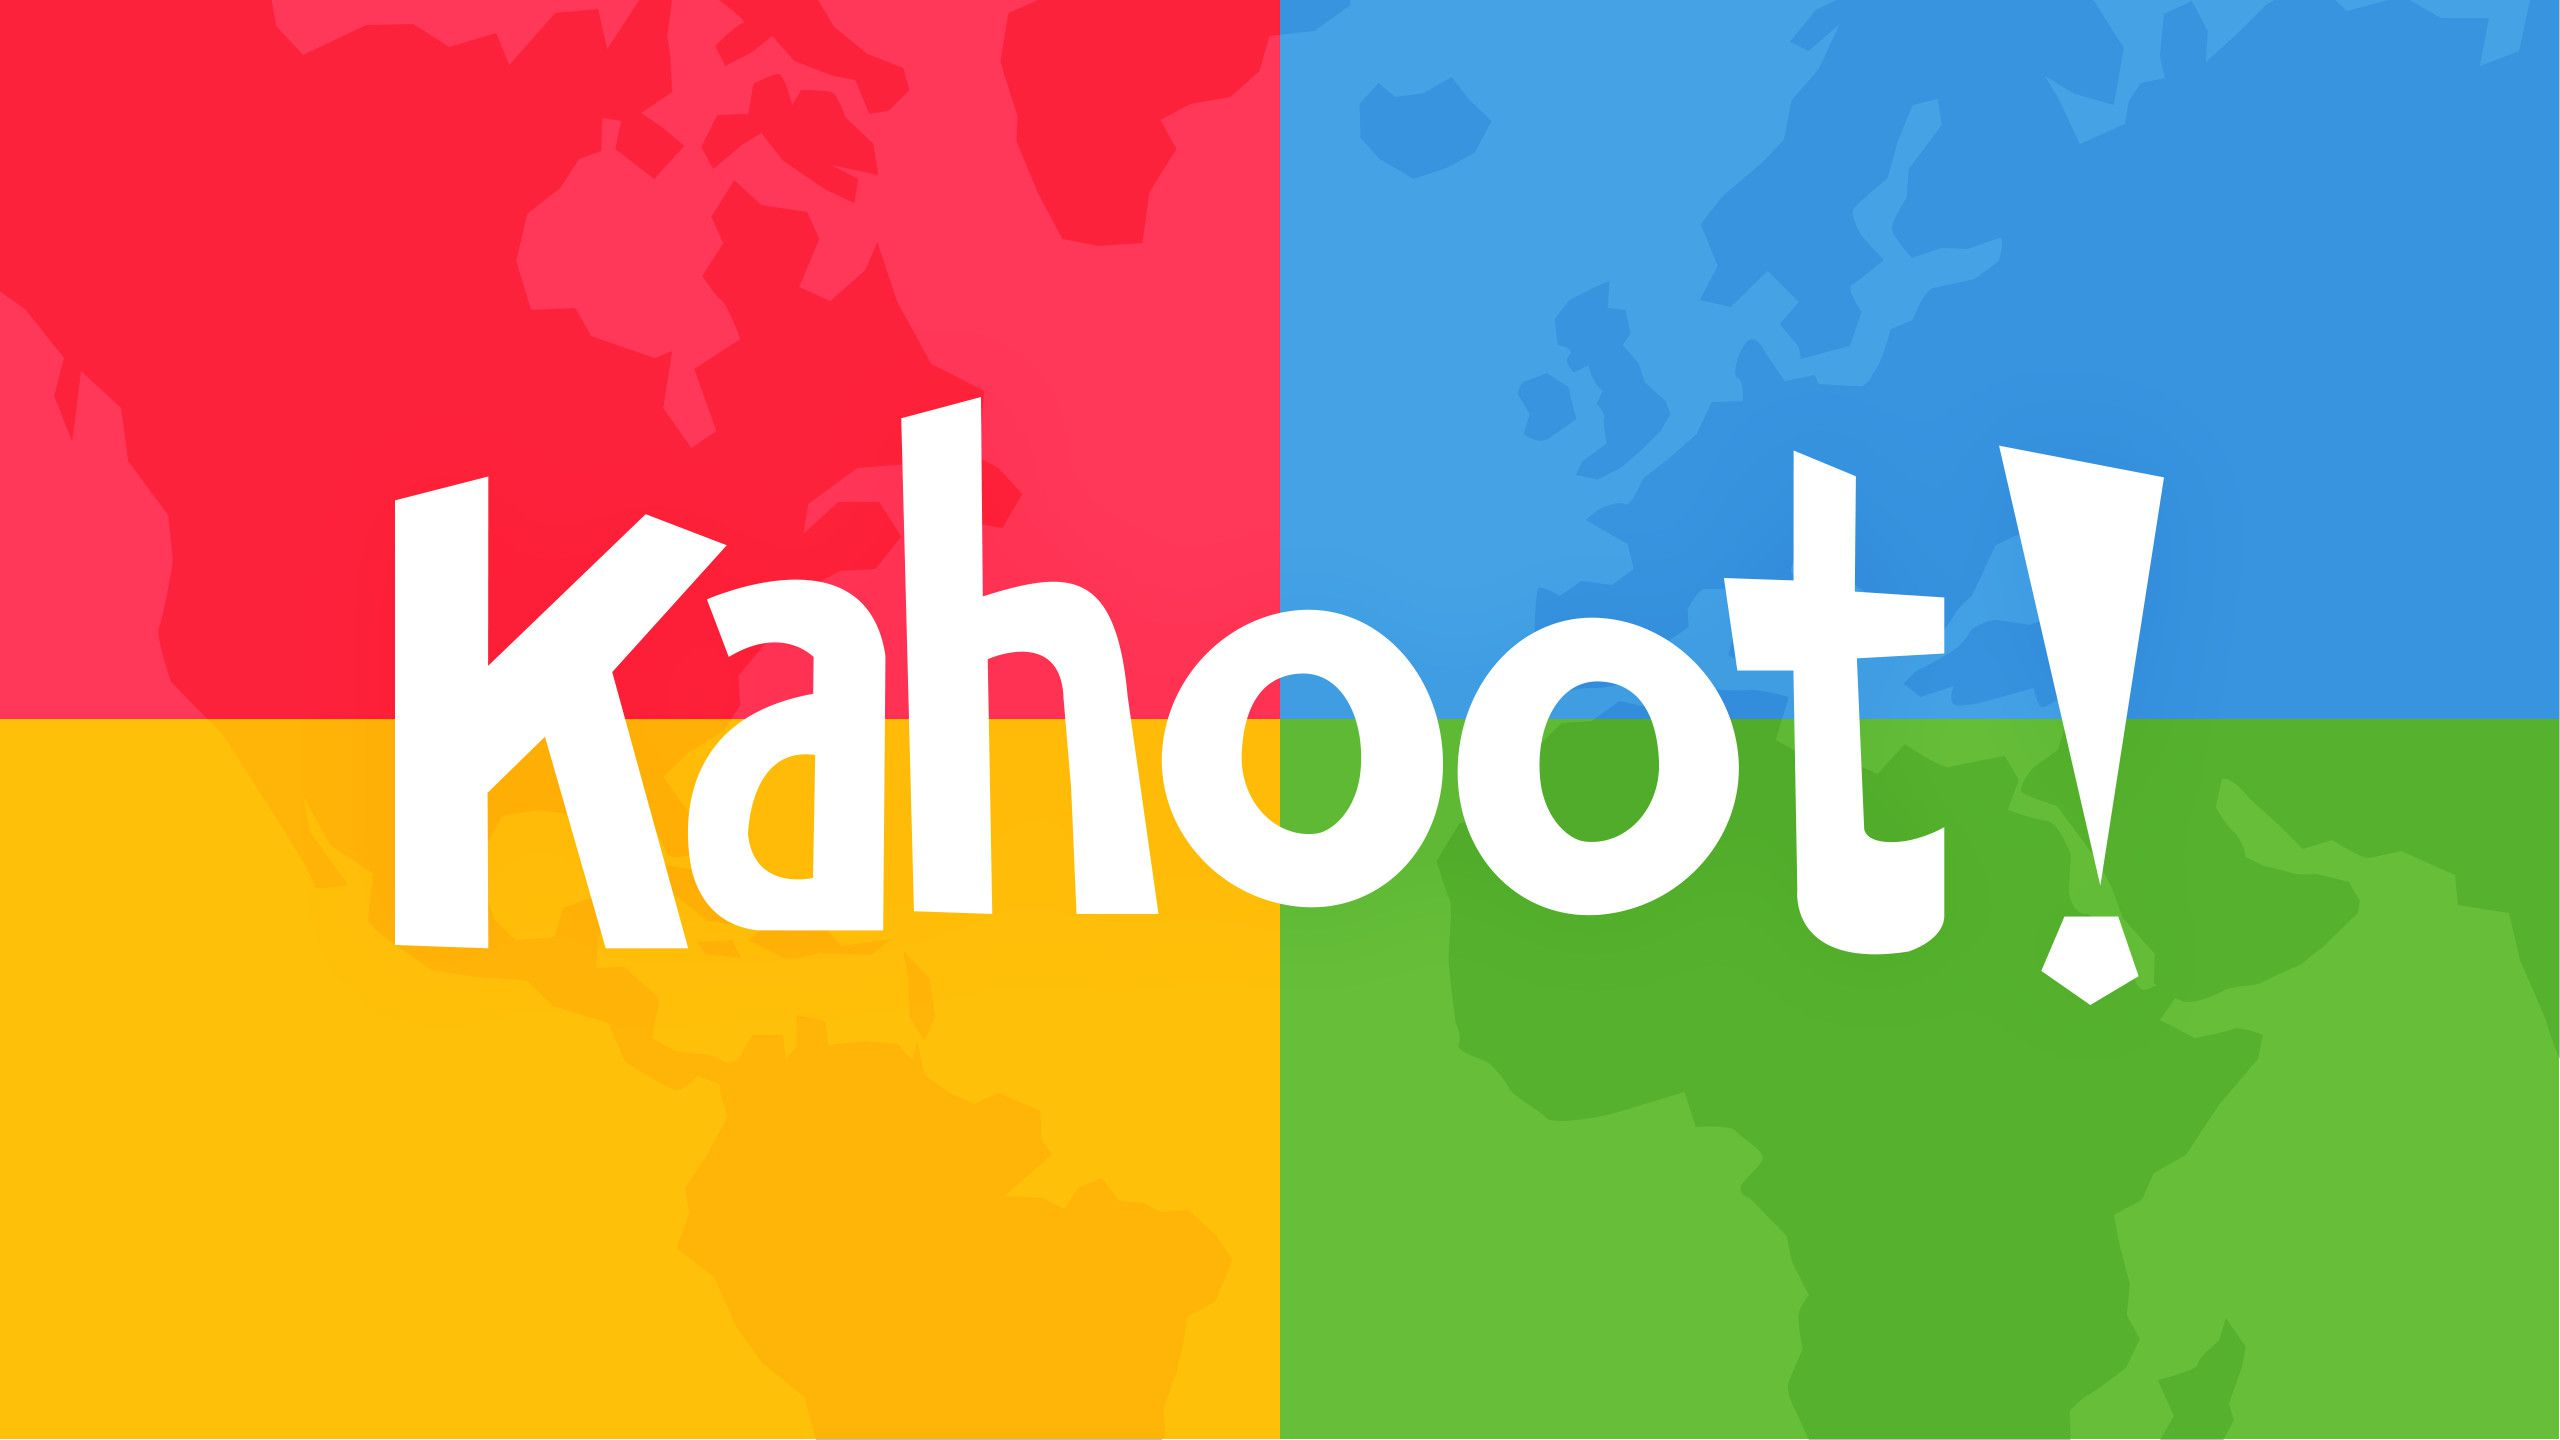 https://play.kahoot.it/#/k/92957384-0433-4524-81db-da5ba7da390d